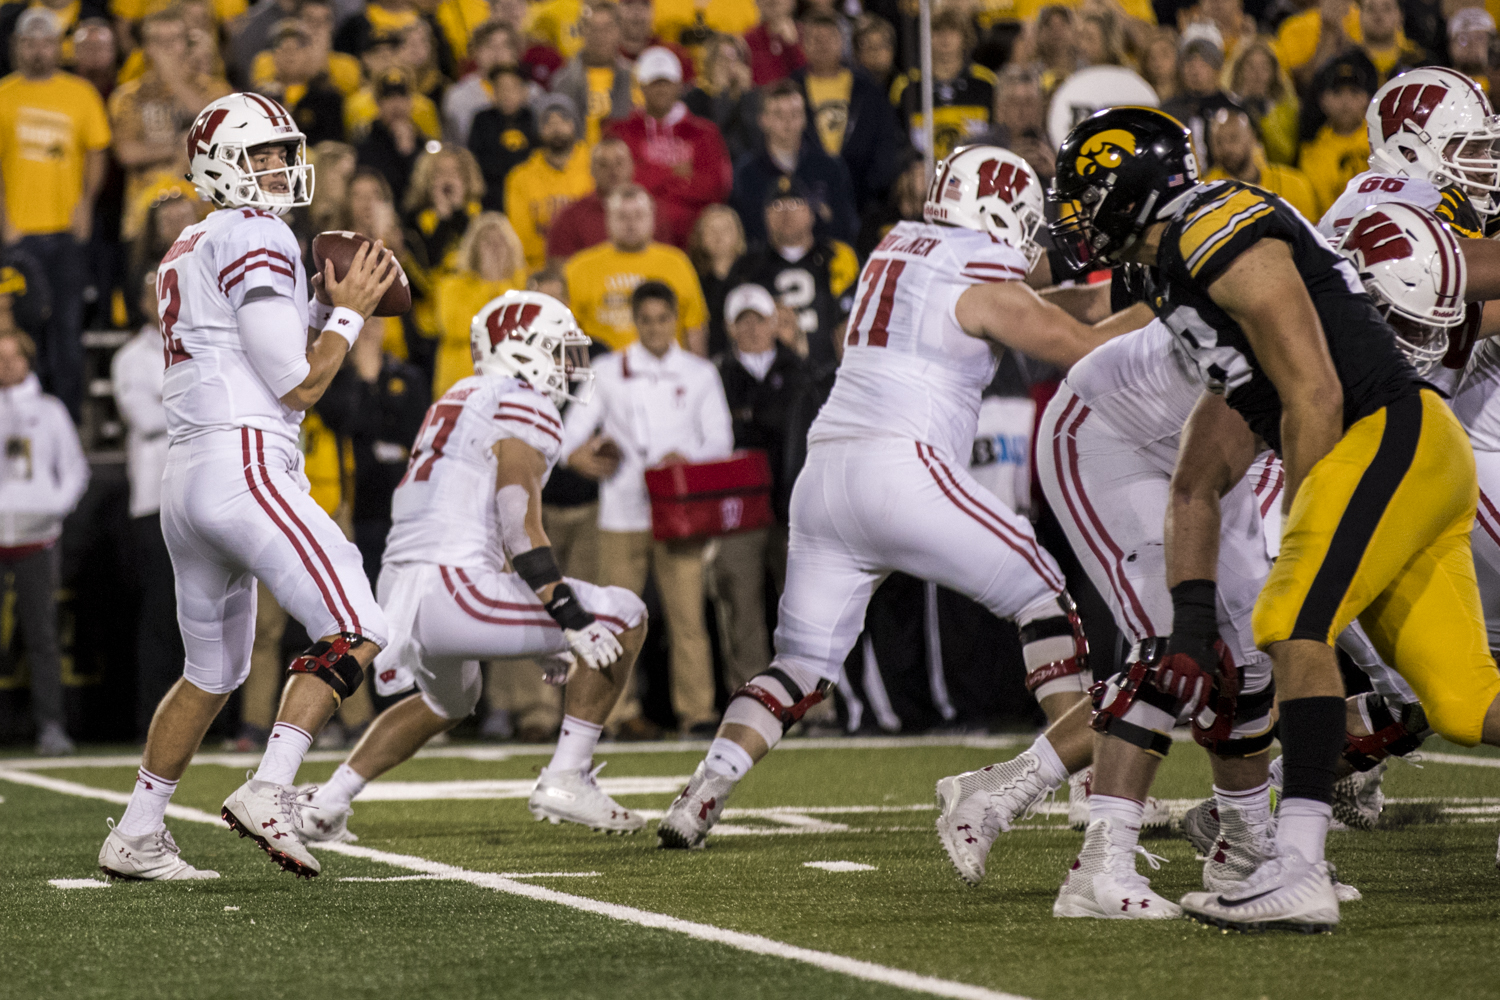 Wisconsin+quarterback+Alex+Hornibrook+drops+back+during+Iowa%27s+game+against+Wisconsin+at+Kinnick+Stadium+on+Saturday%2C+September+22%2C+2018.+The+Badgers+defeated+the+Hawkeyes+28-17.